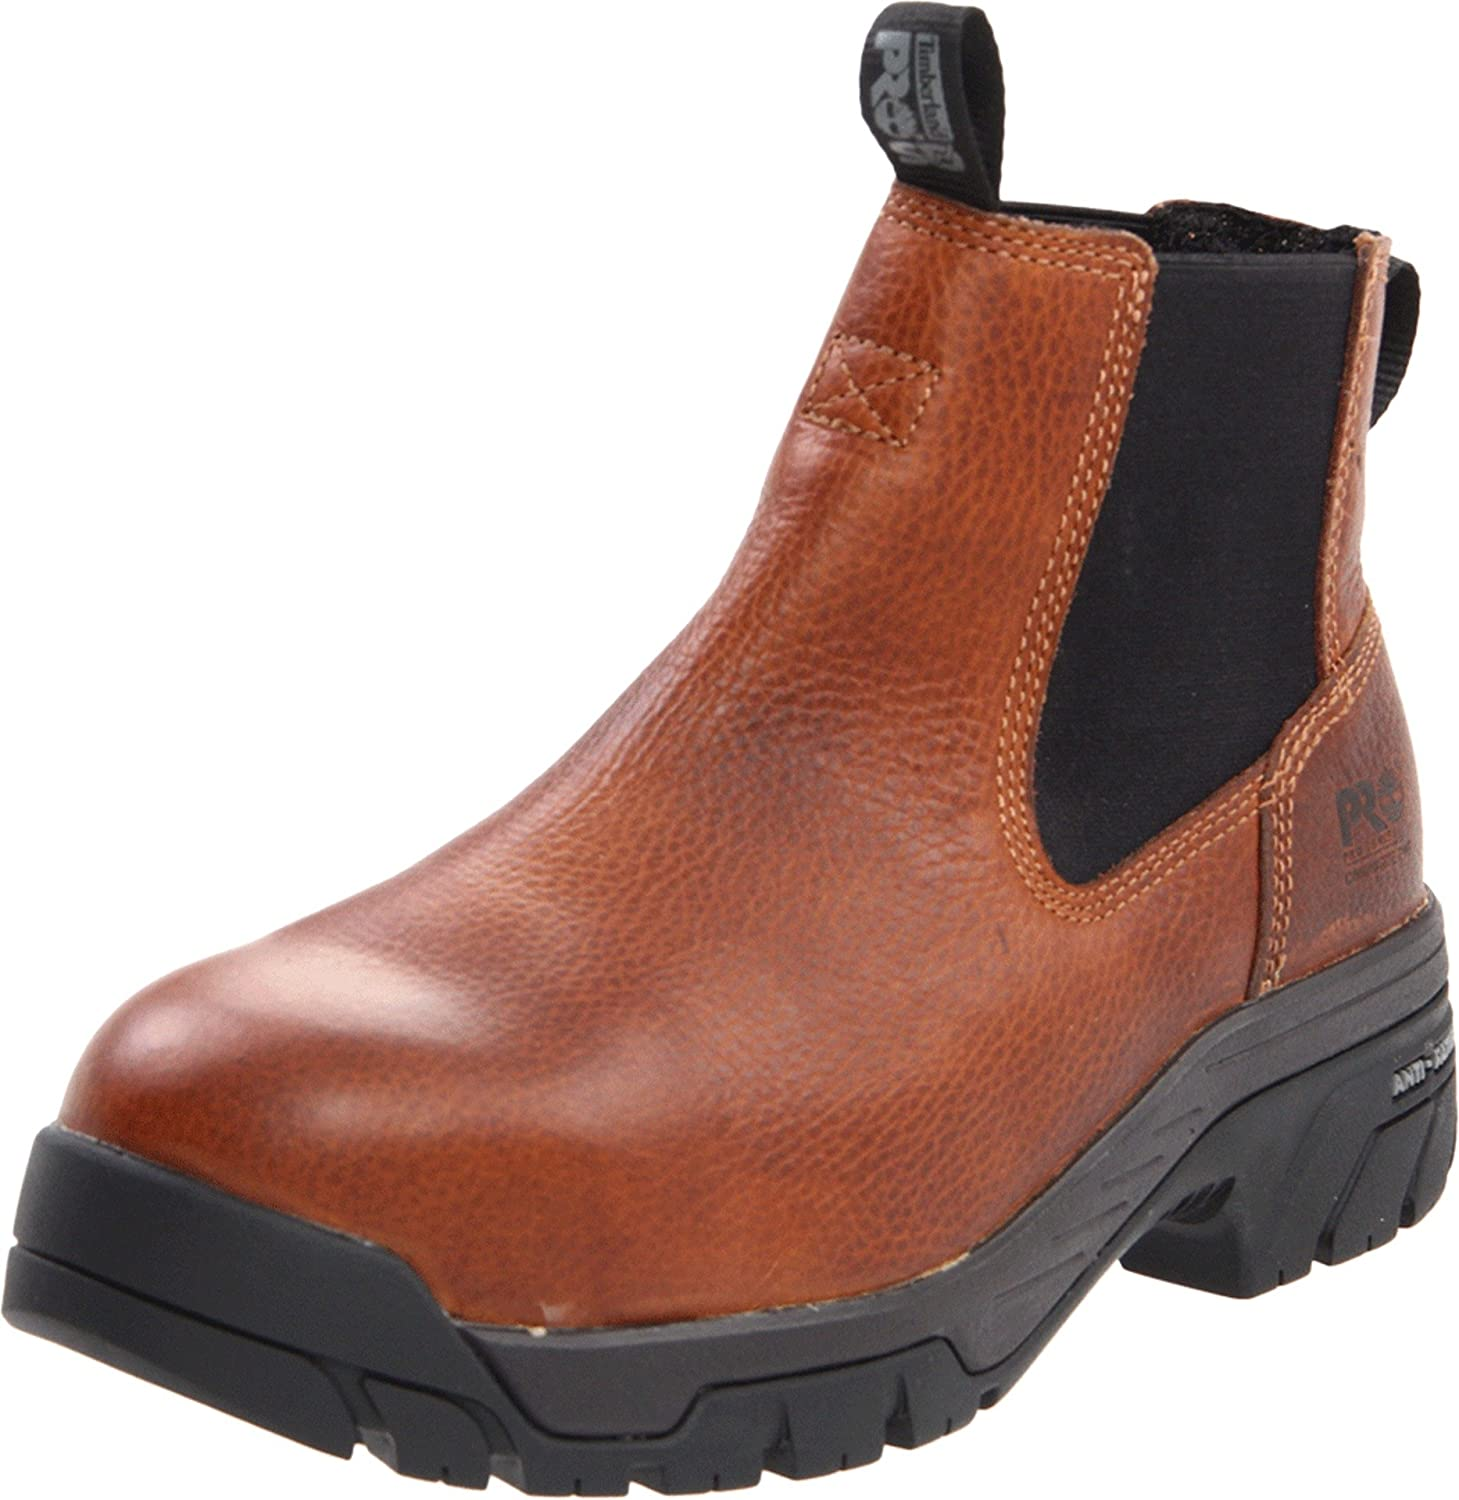 Mens Laceless Boots Bsrjc Boots